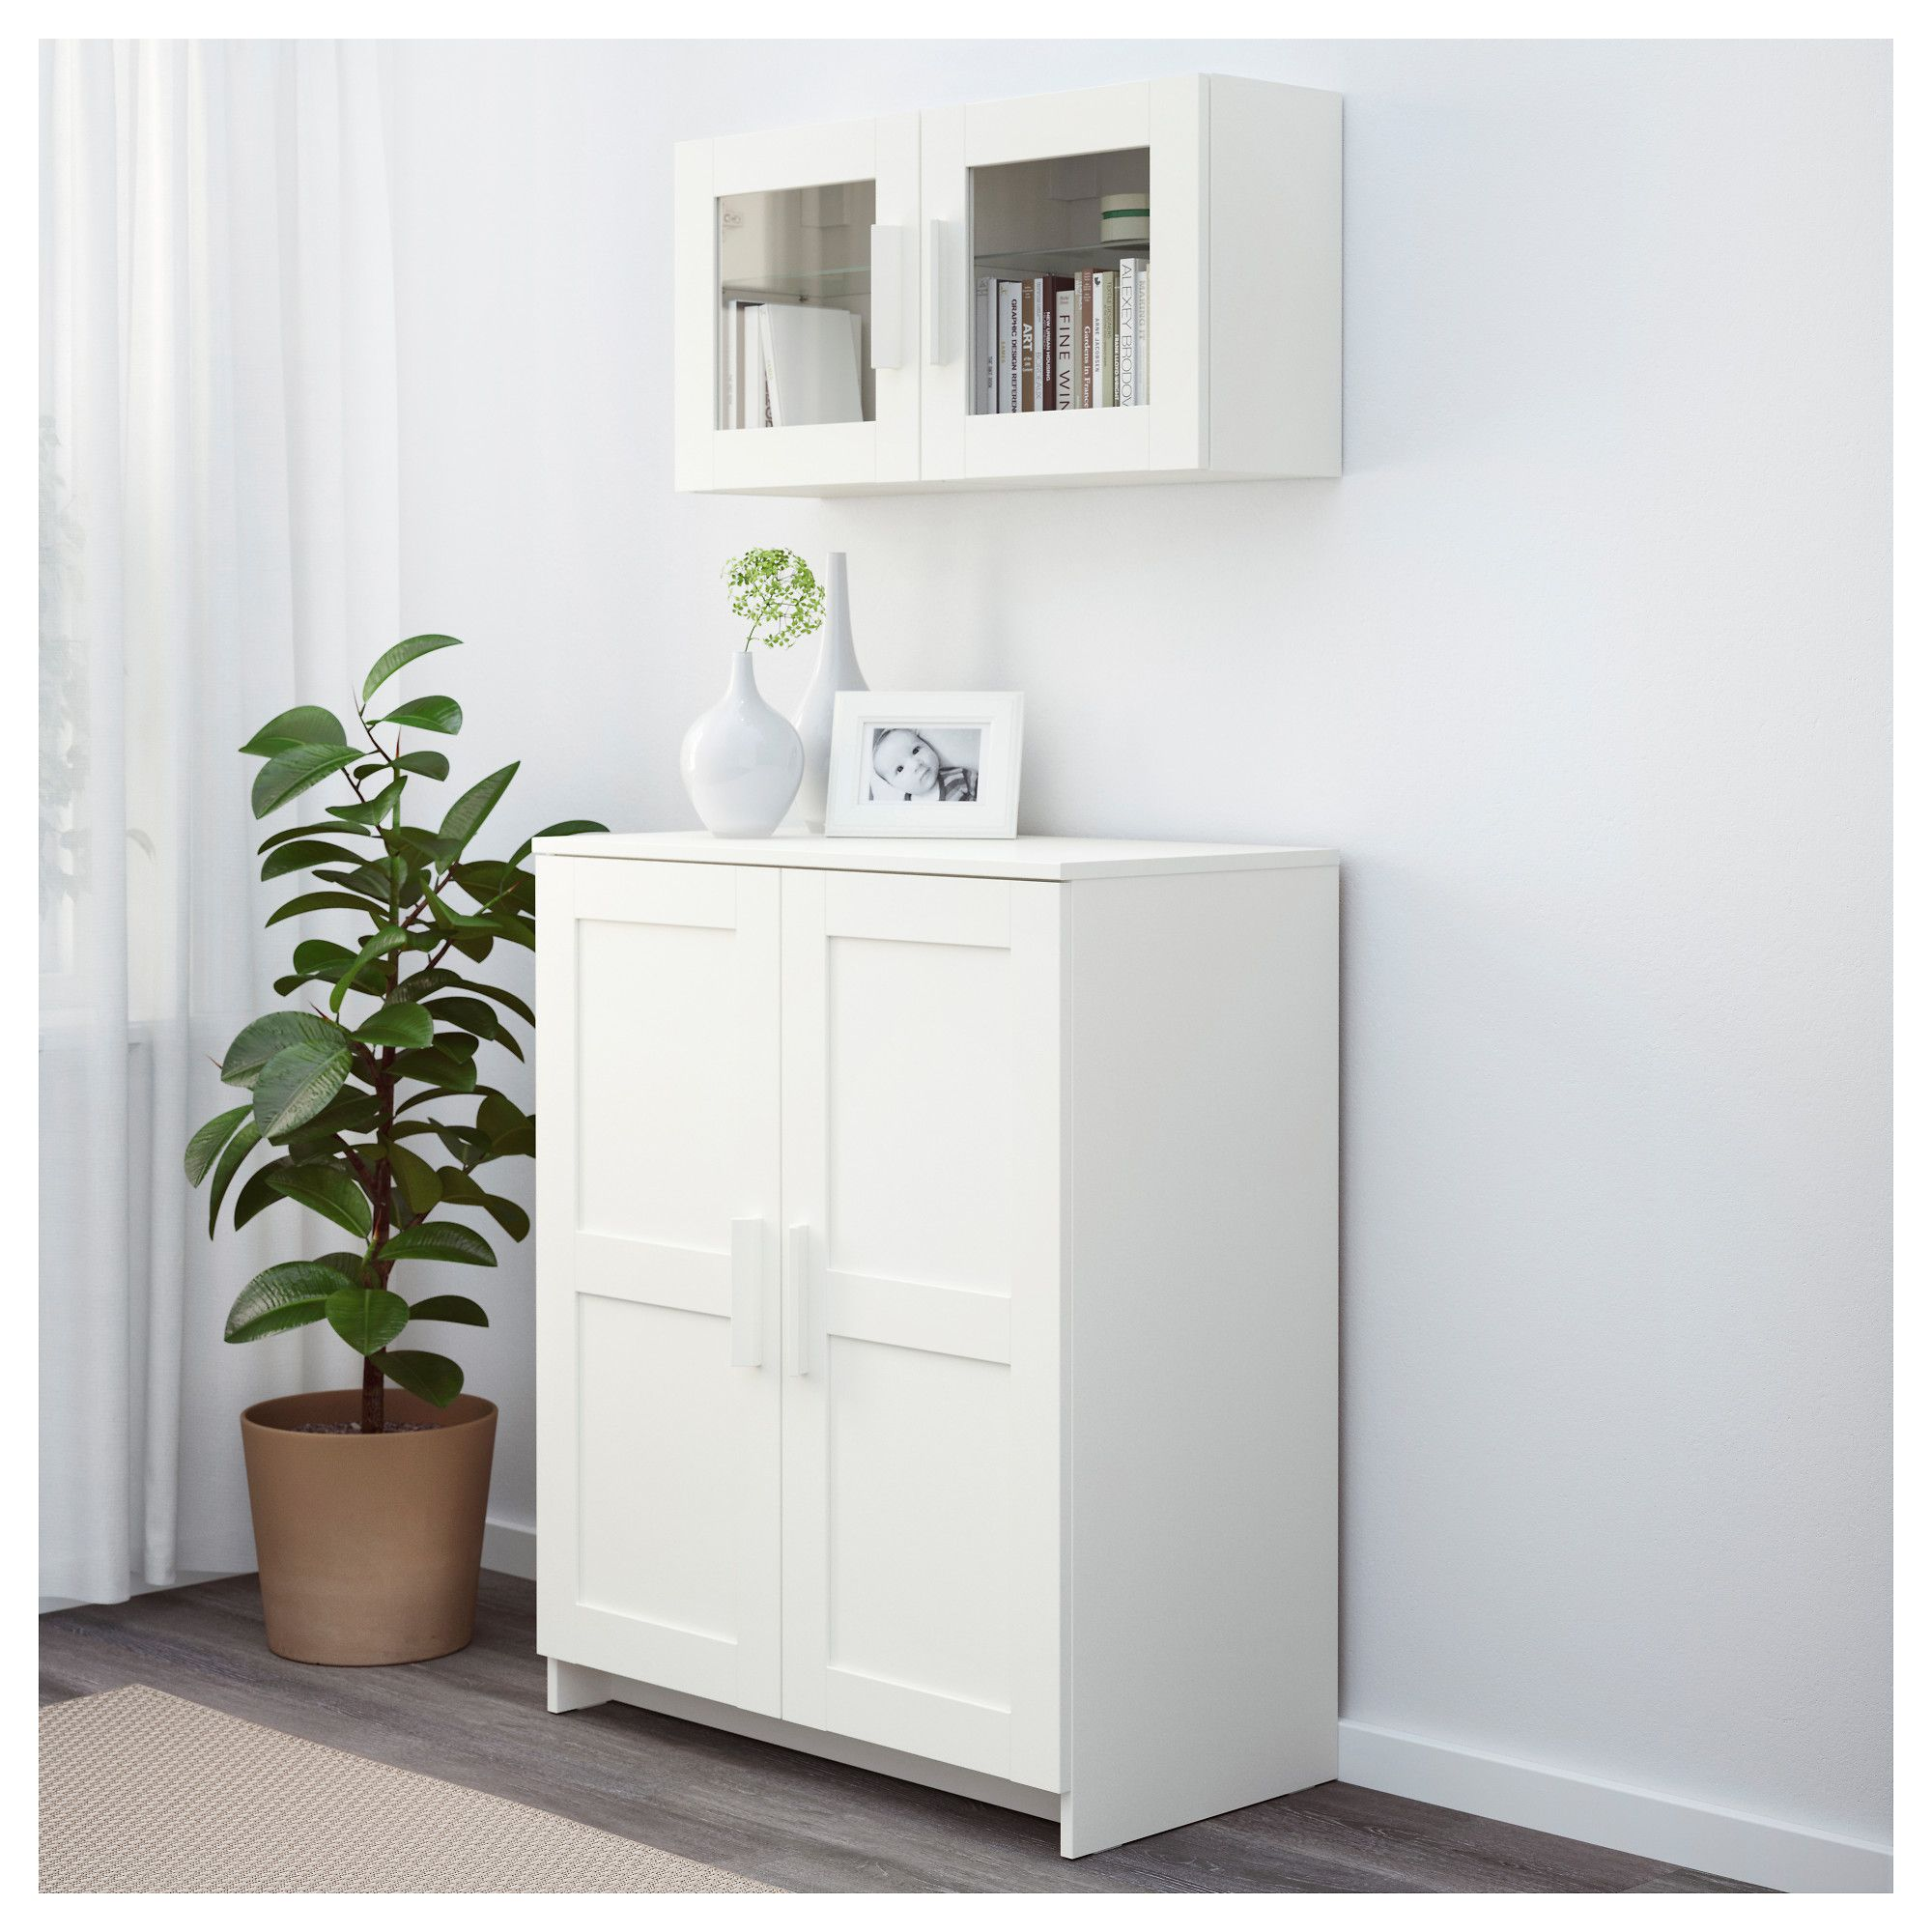 brimnes cabinet with doors white ikea in 2019 ikea. Black Bedroom Furniture Sets. Home Design Ideas